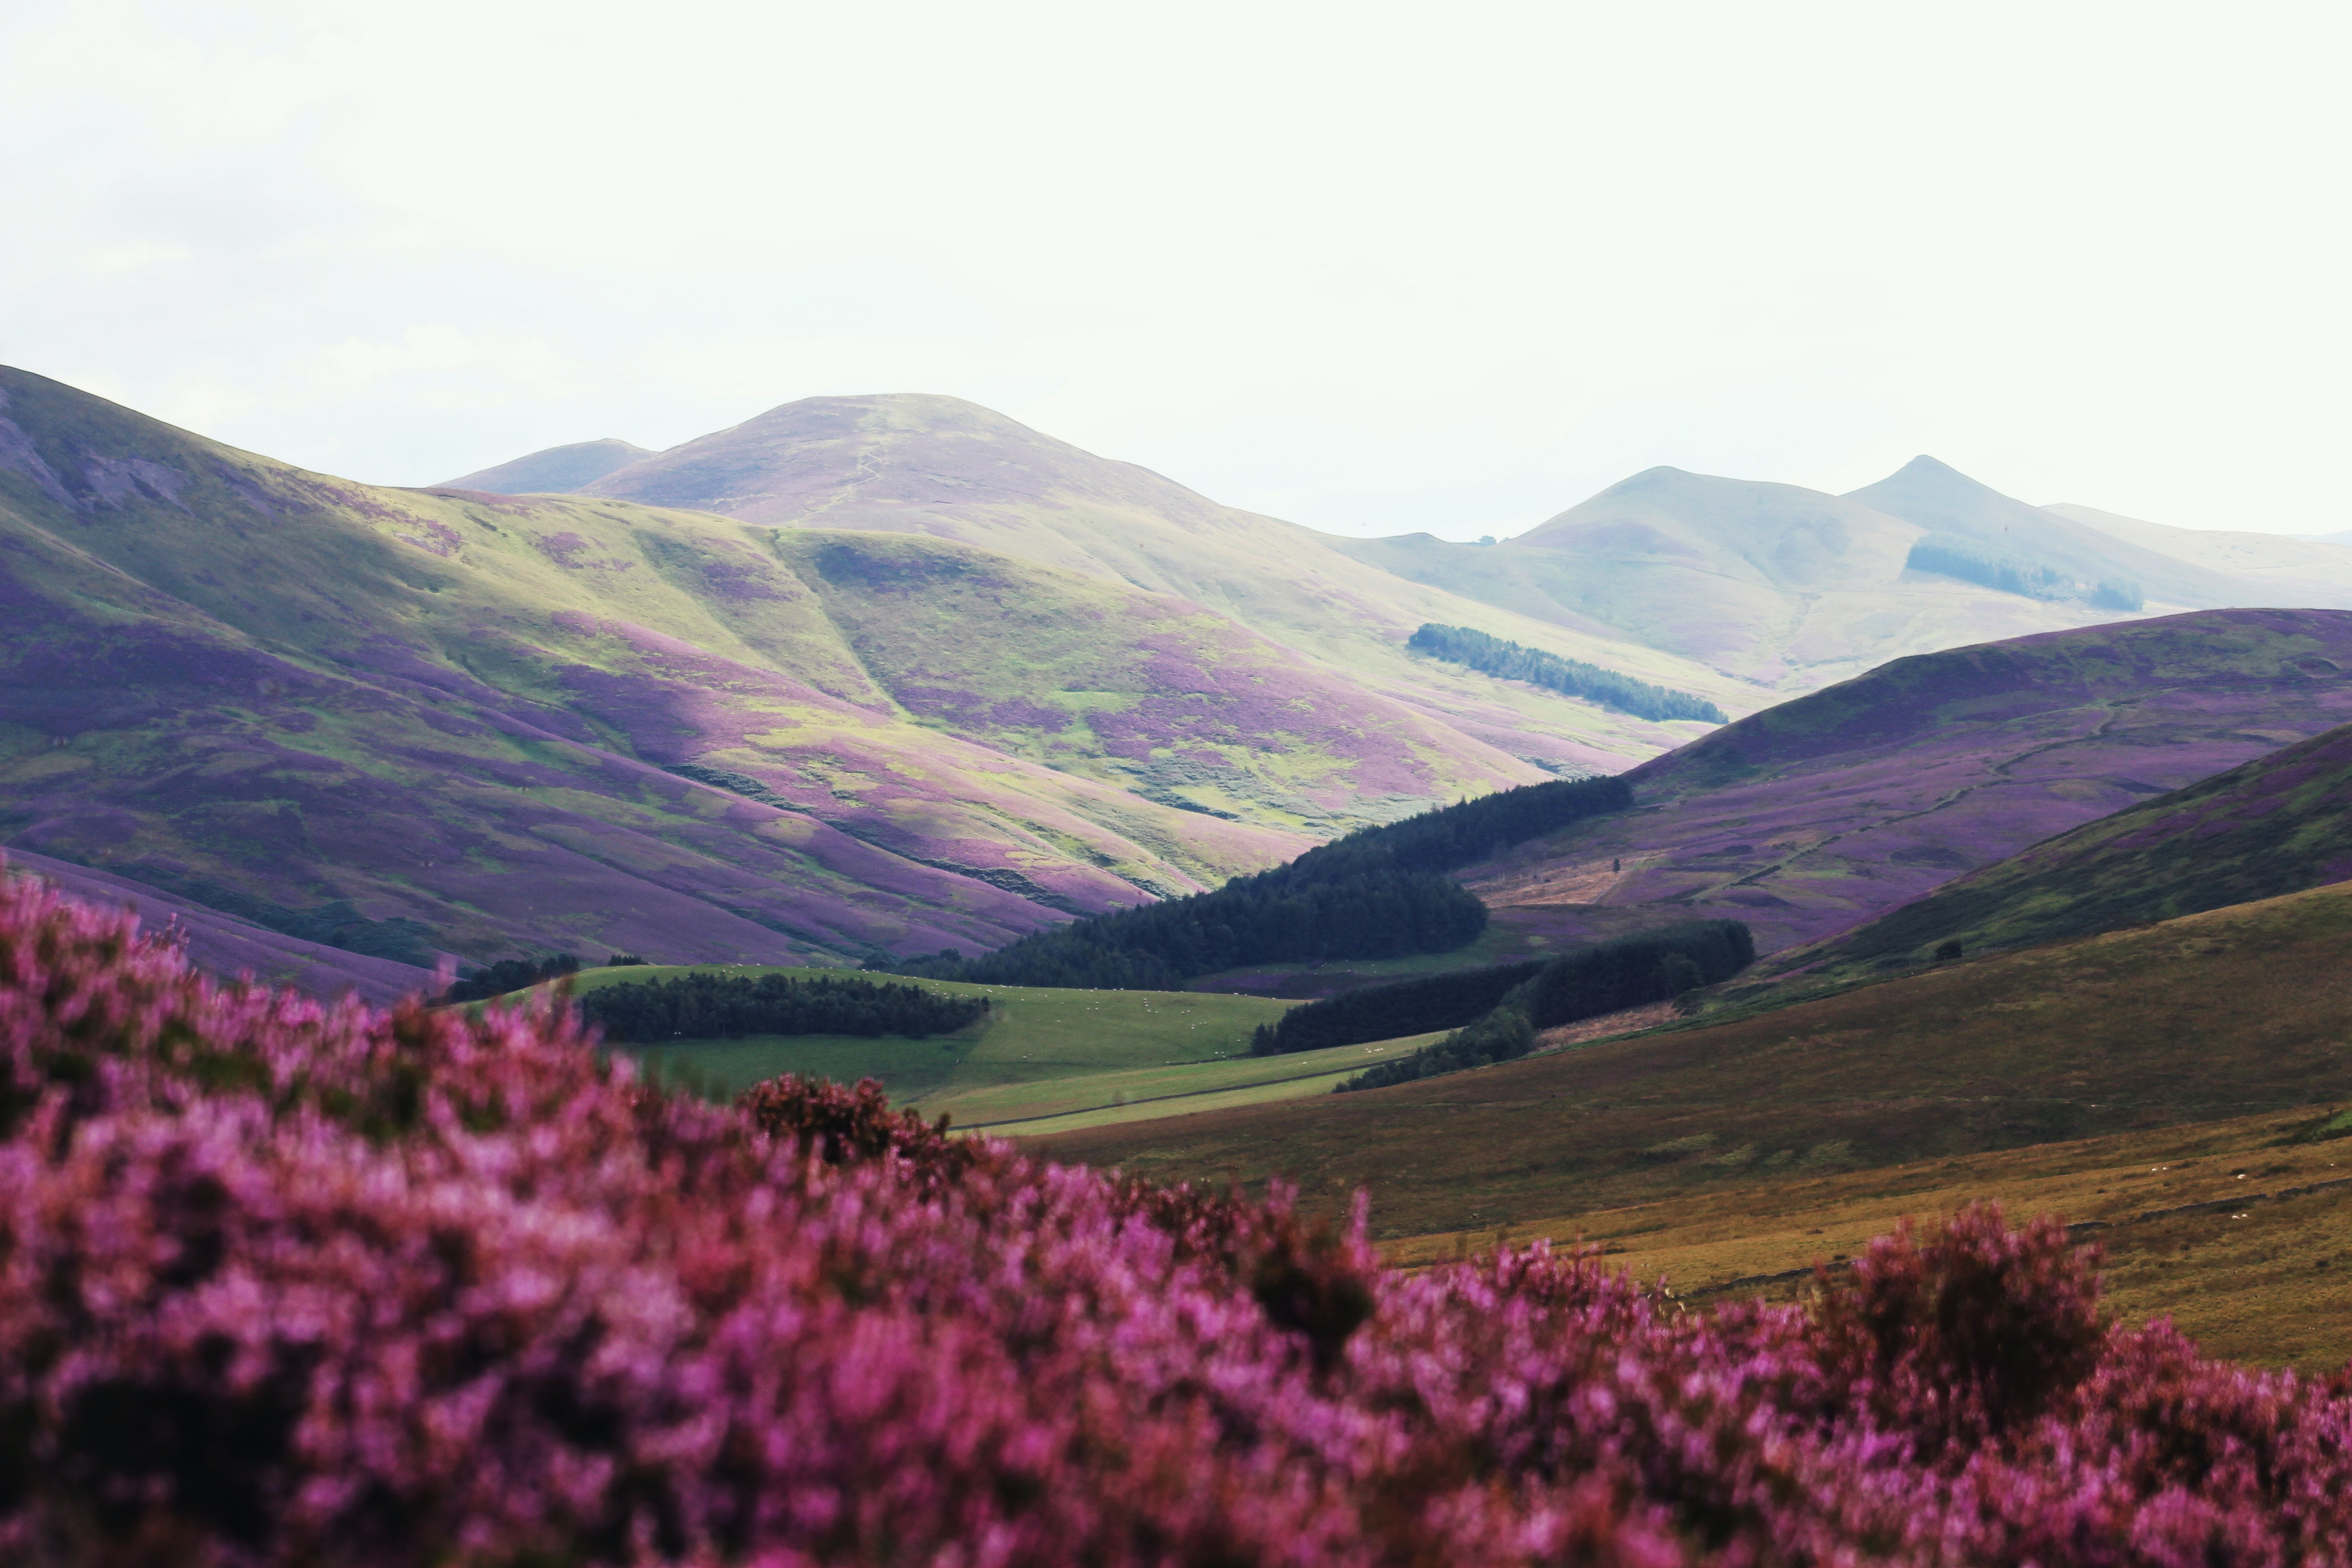 Purple heather in front of a view of the Pentland hills